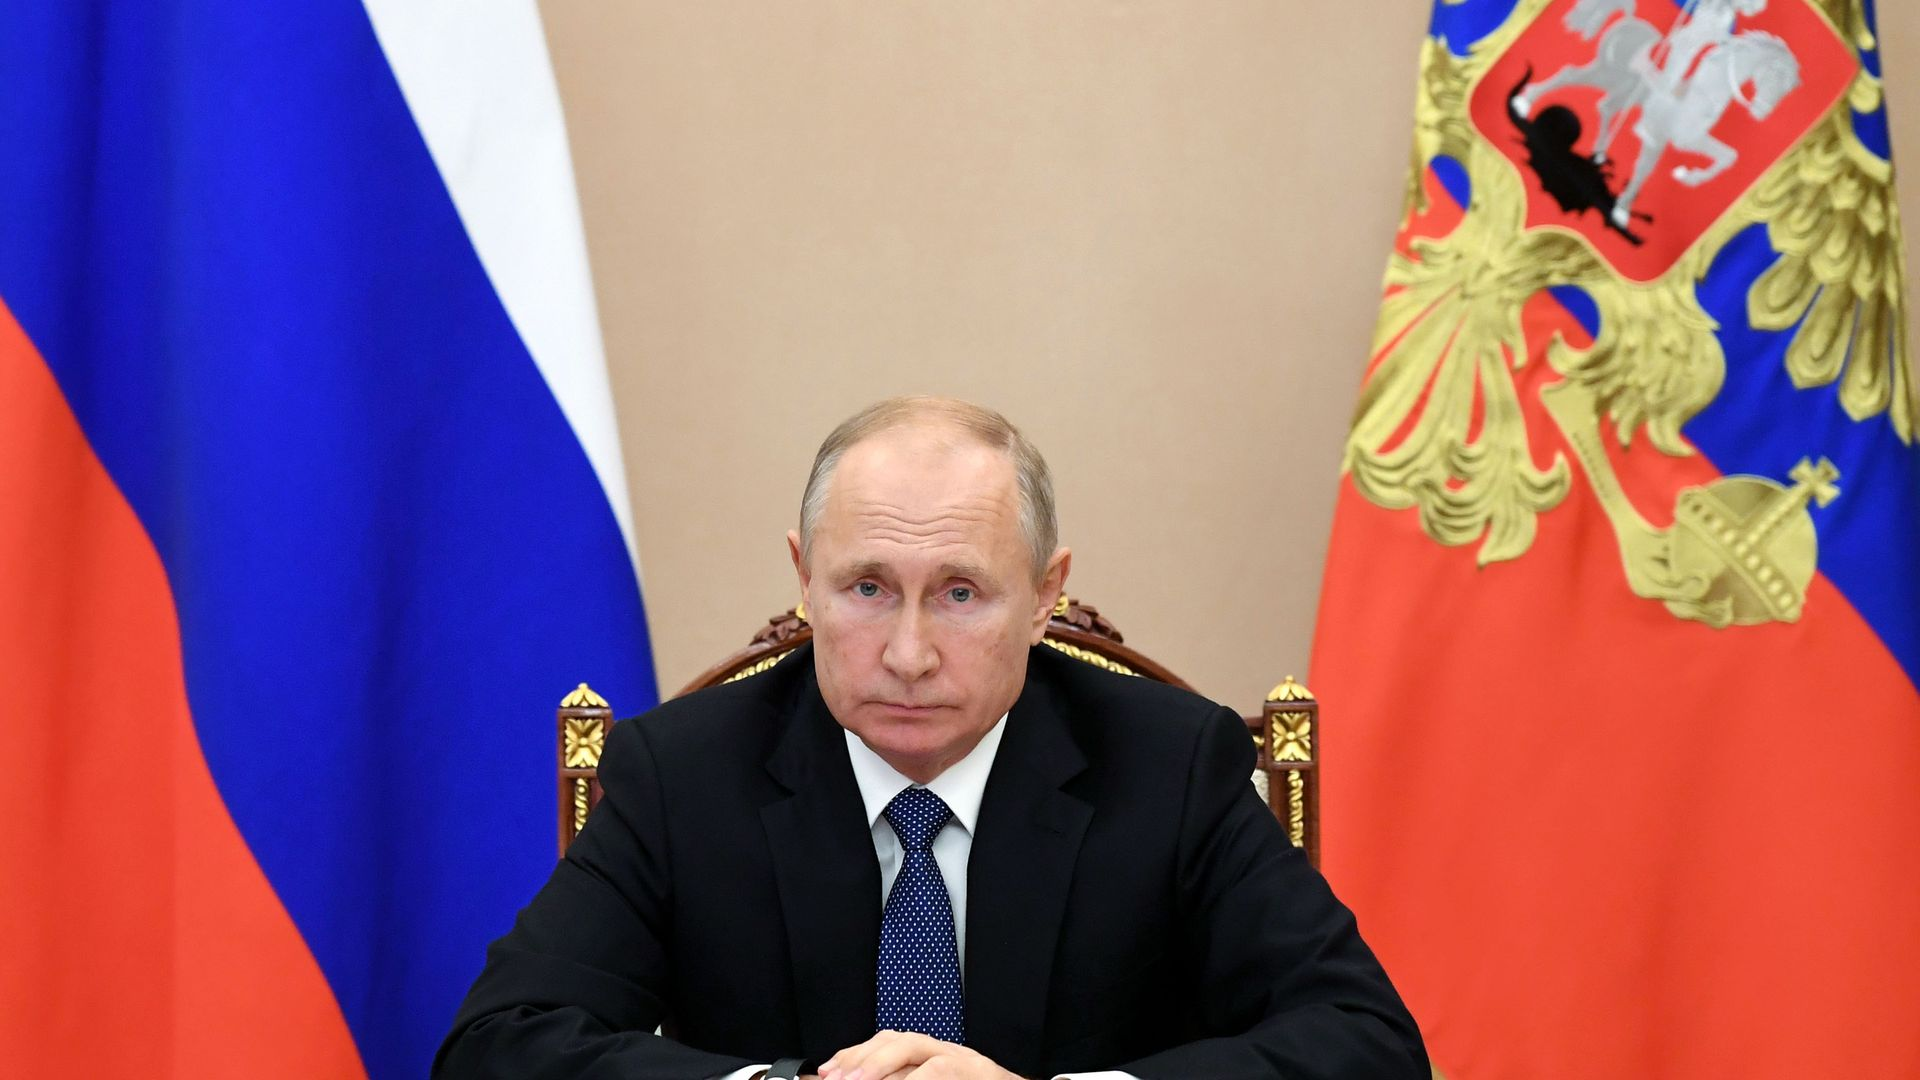 Vladimir Putin holds a video conference meeting with permanent members of the Russian Security Council at the Kremlin - Credit: Alexei Nikolsky/Russian Presiden